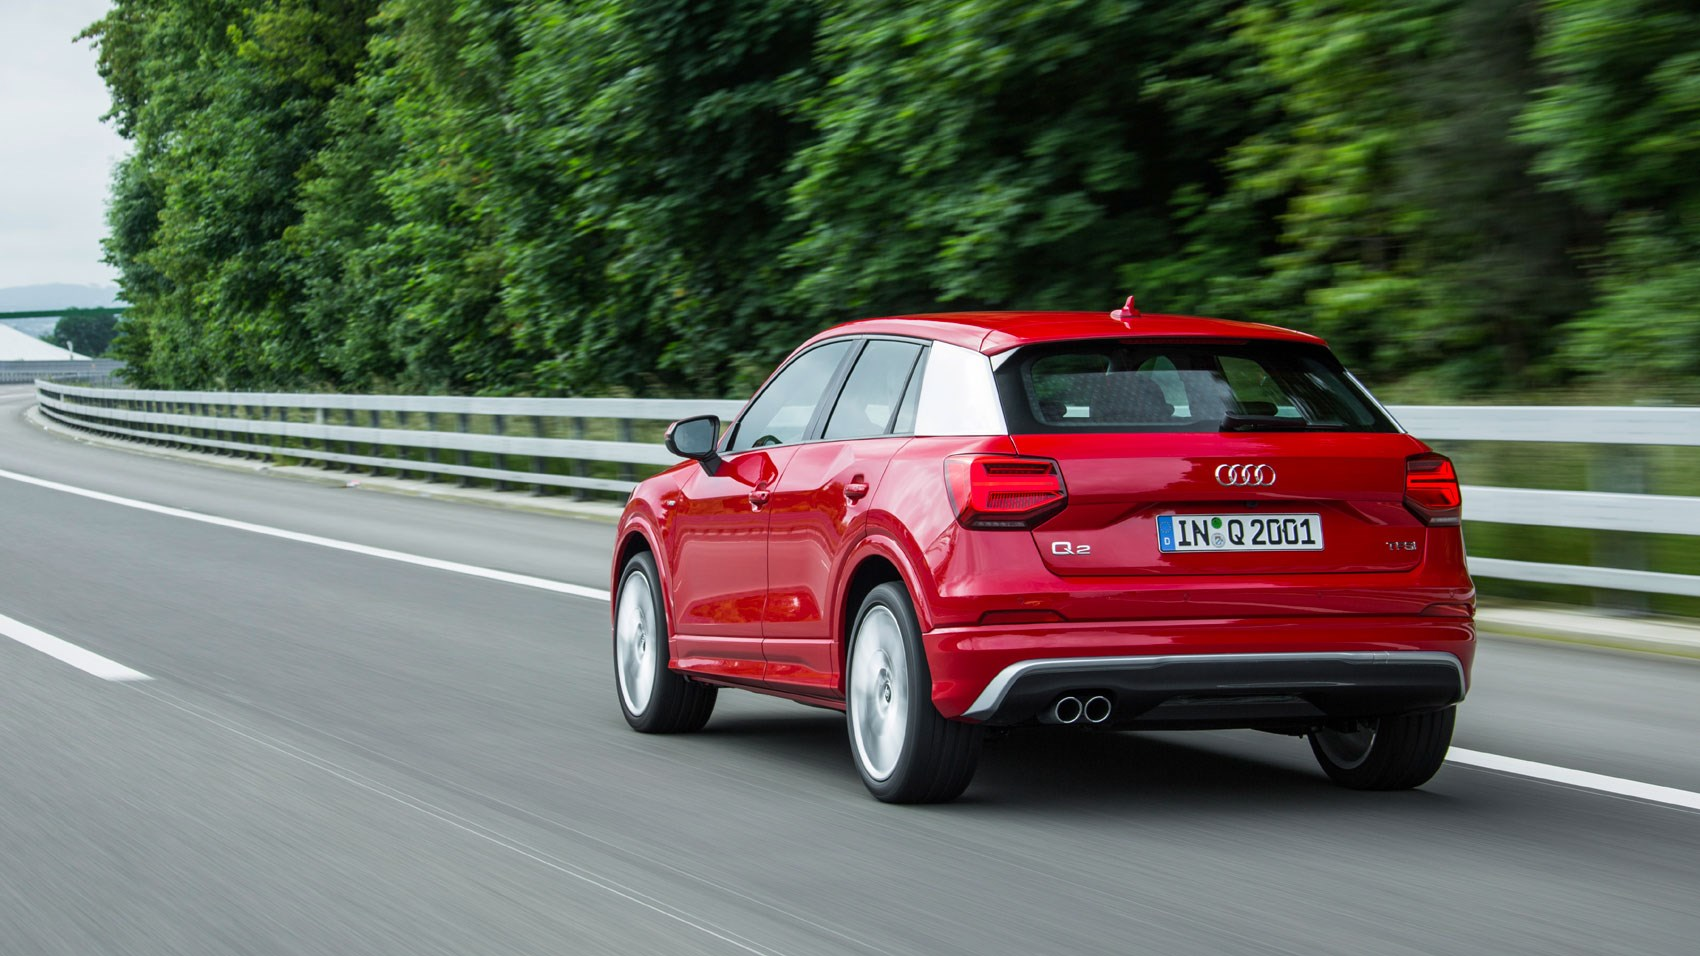 Audi q2 16 tdi sport 2016 review by car magazine the audi q2 16 tdi is likely to be second bestseller after 14 tfsi sciox Image collections